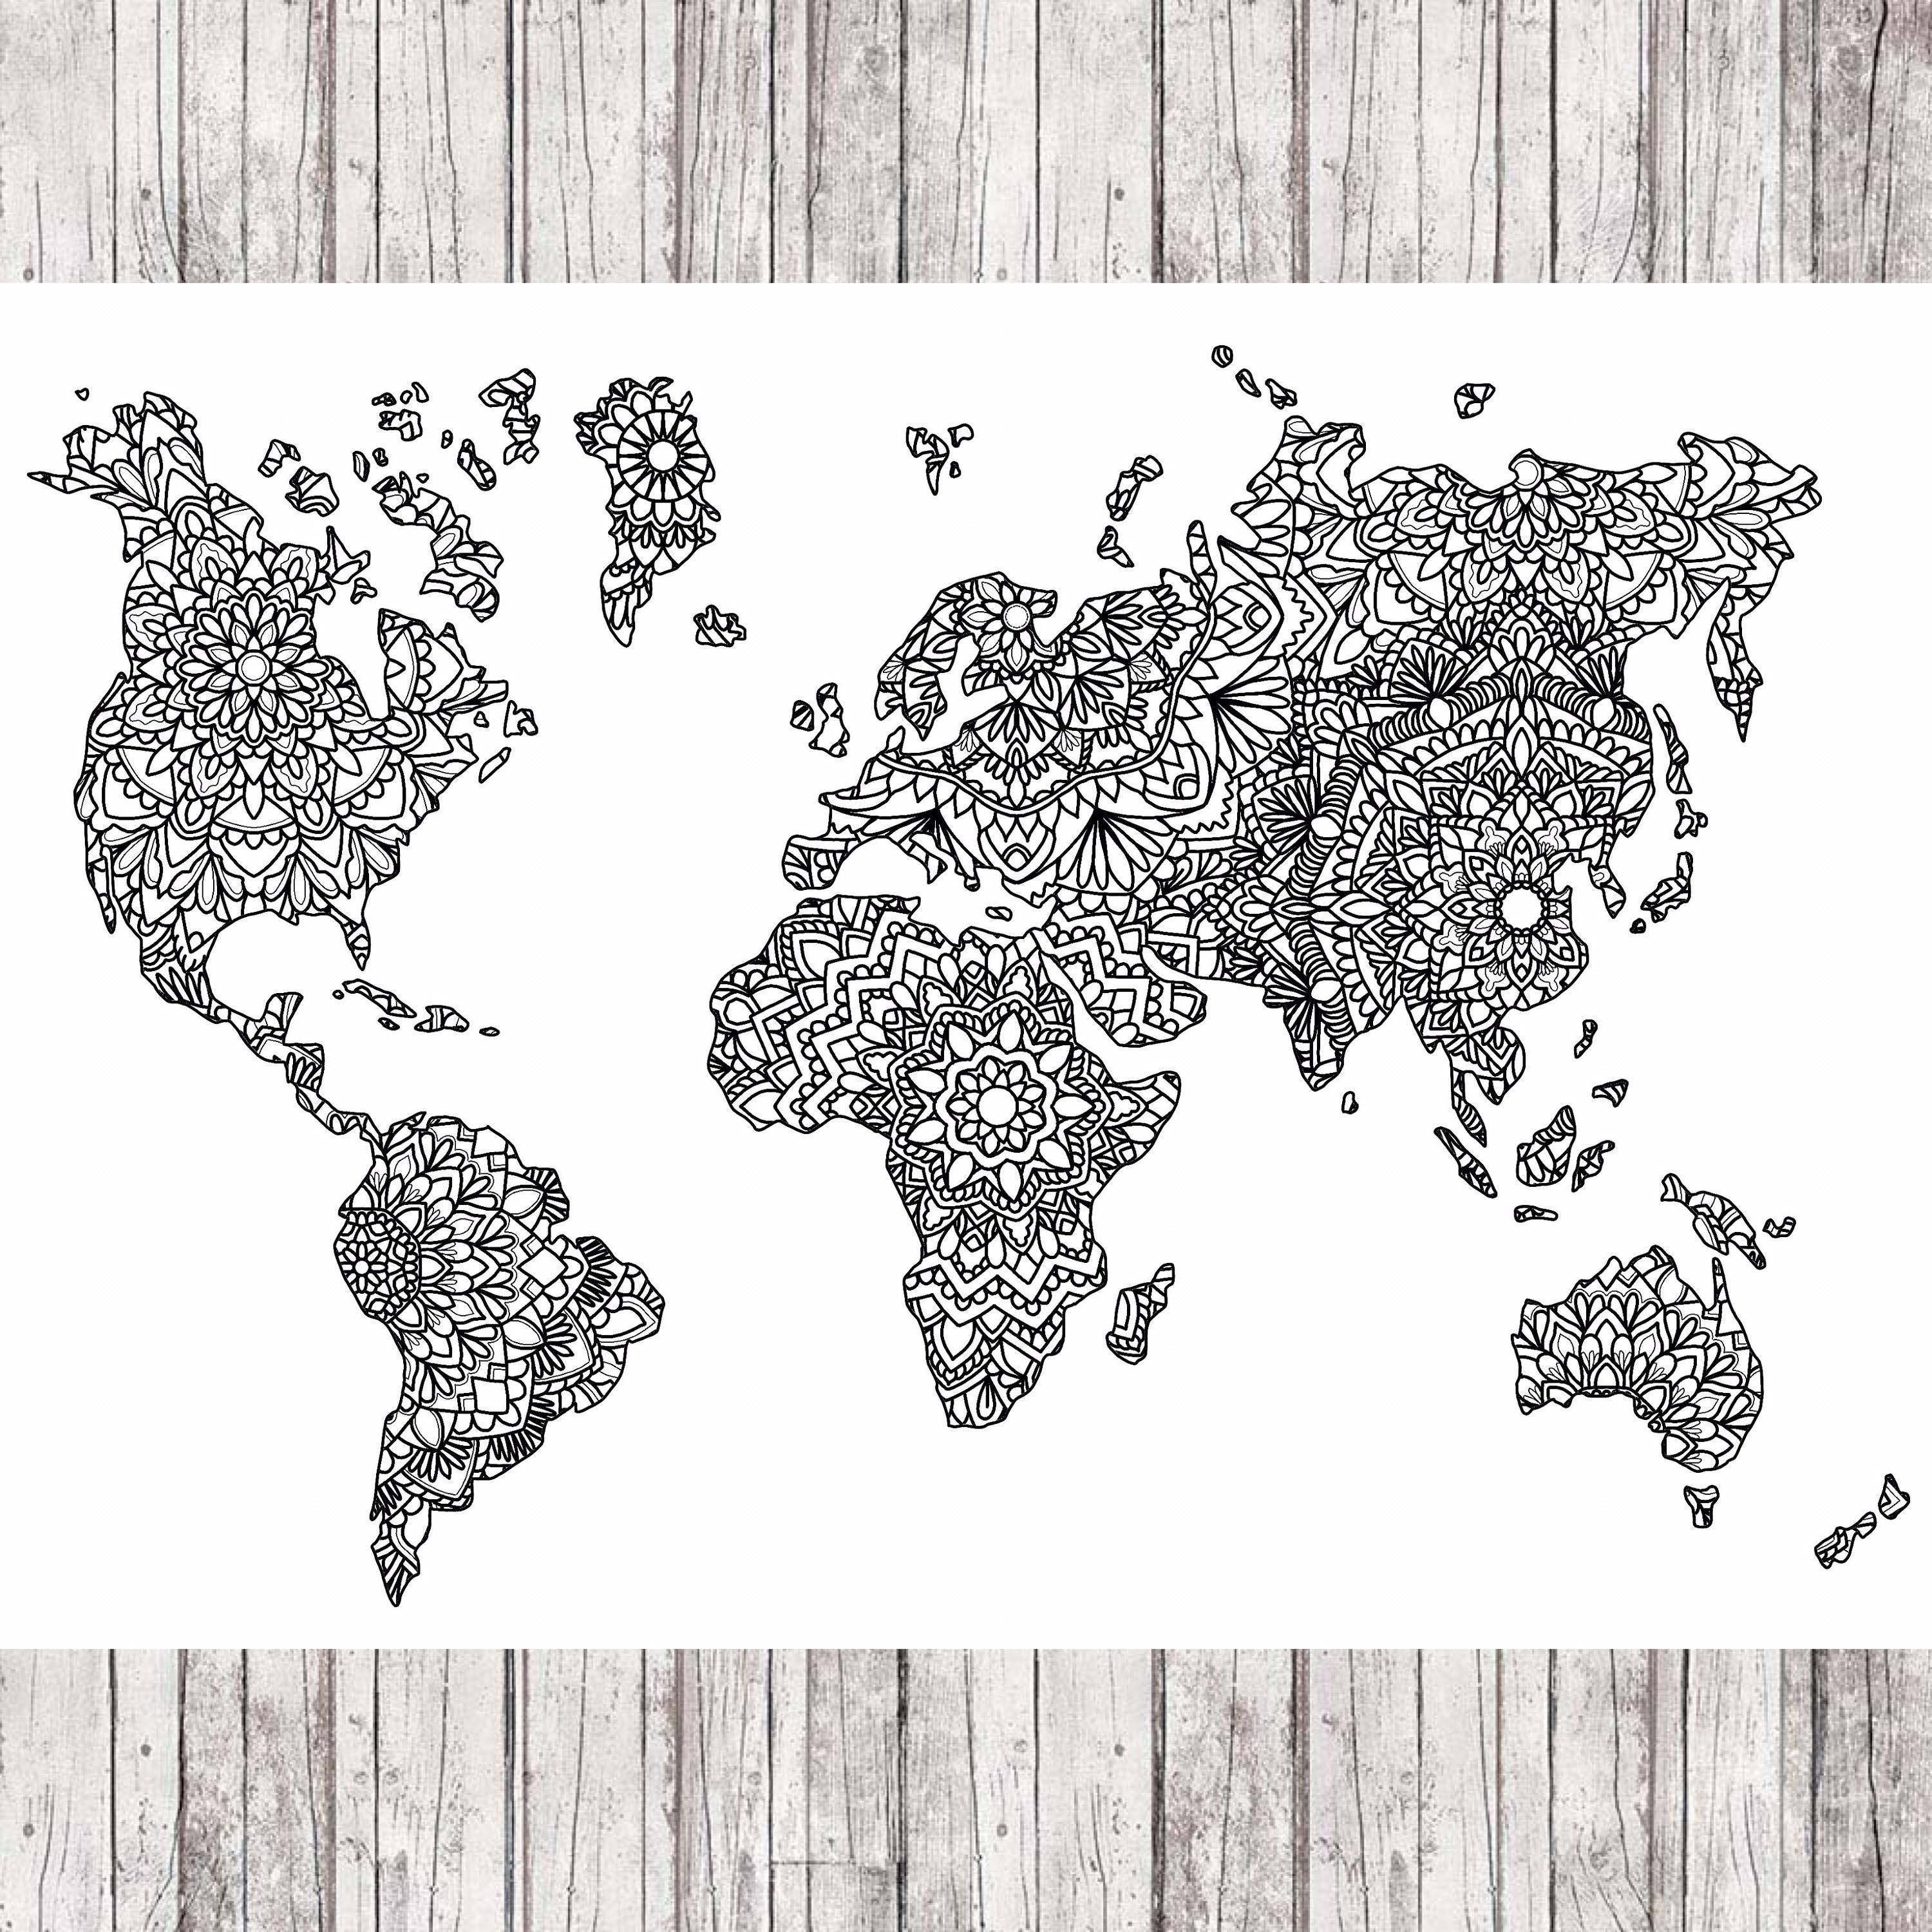 Excited to share the latest addition to my etsy shop mandala world to my etsy shop mandala world map httpetsy2ngd7sc art print digital white black walldecor wallart digitalprint drawing worldmap gumiabroncs Images